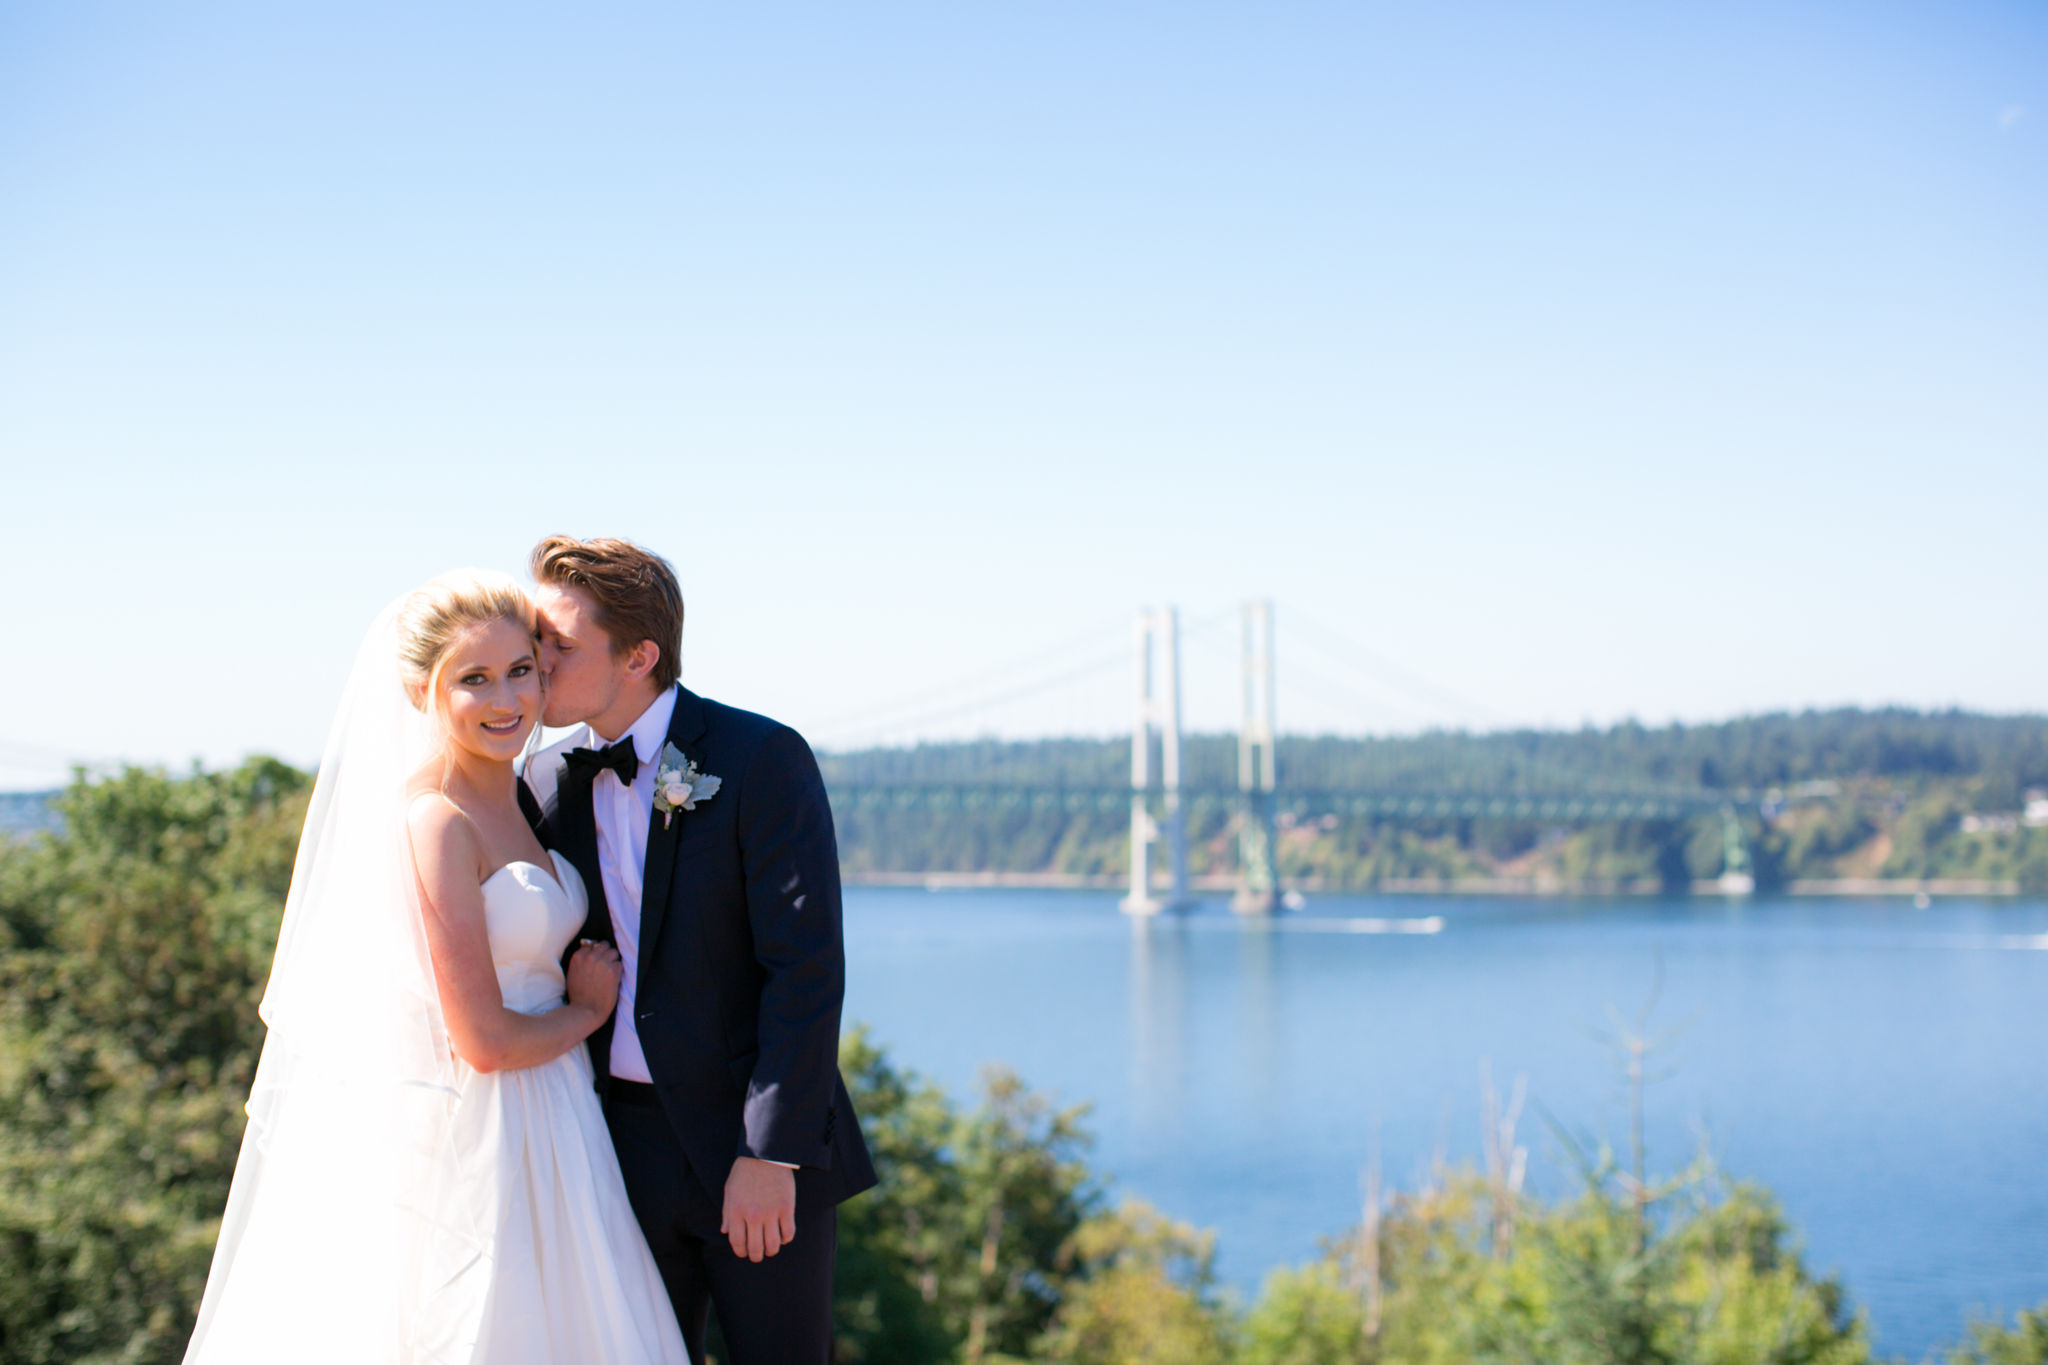 Tacoma Wedding Featured in South Sound Wedding & Event Magazine